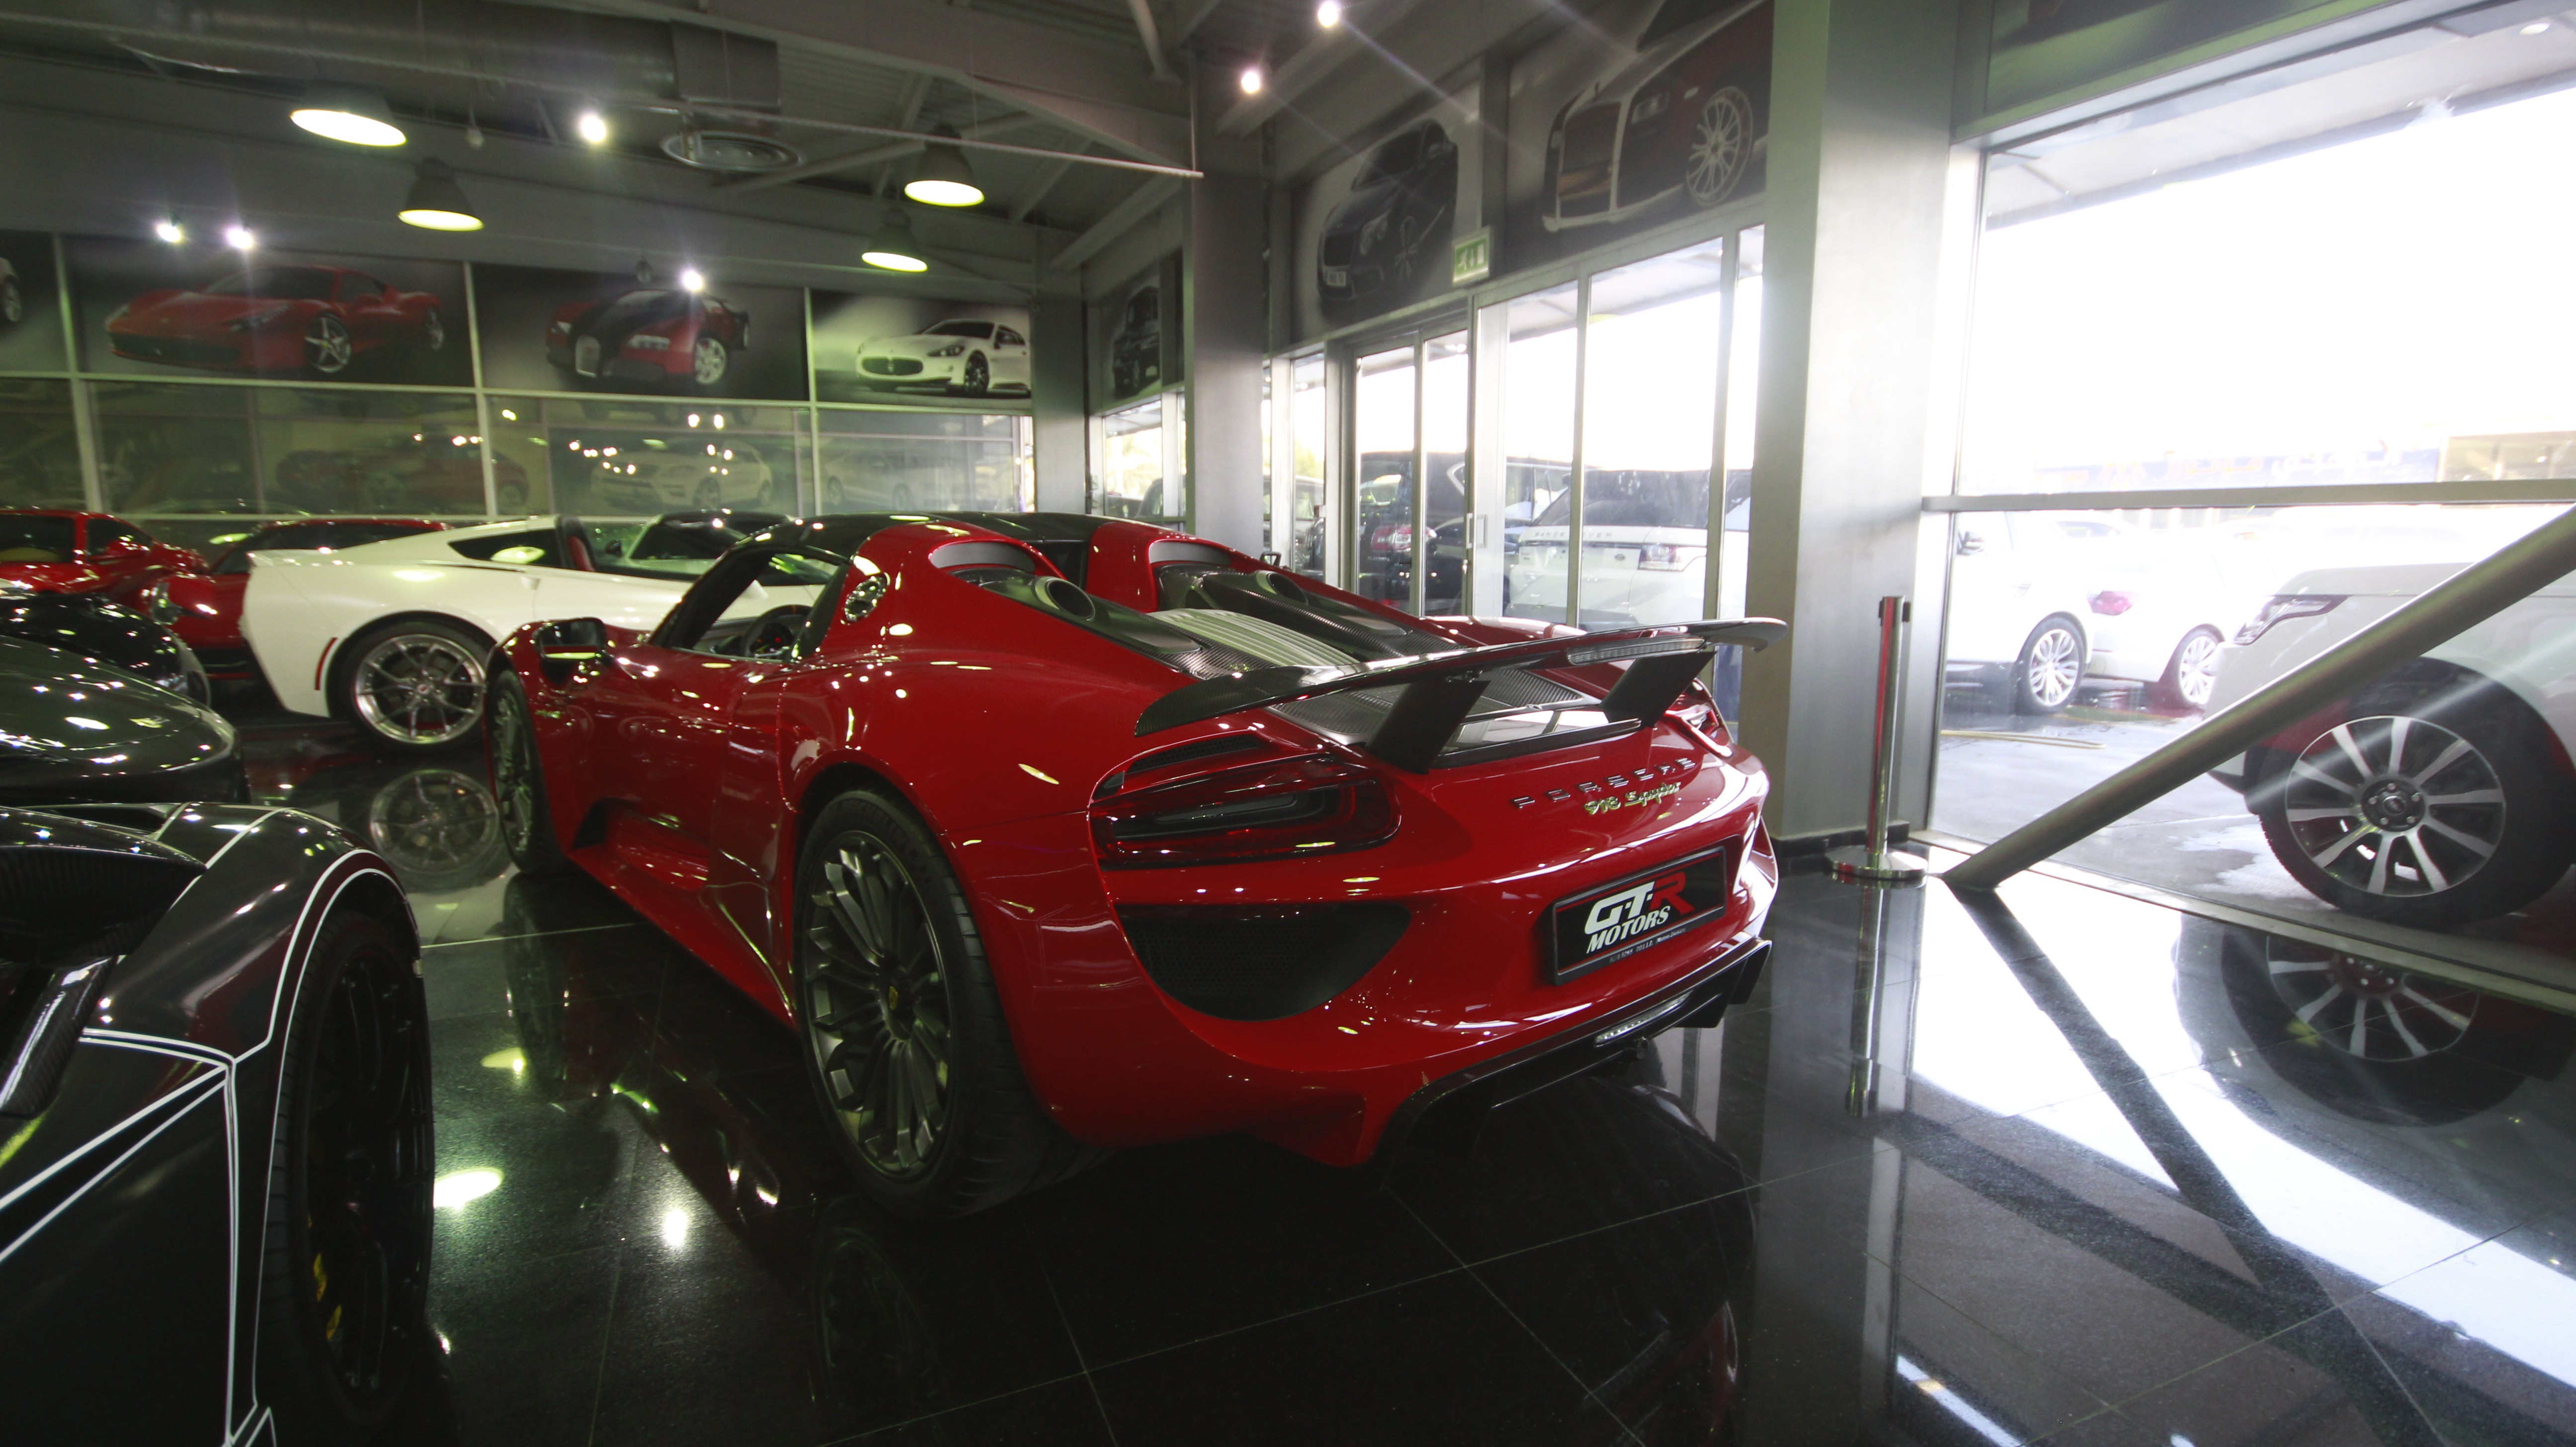 brand-new-porsche-918-spyder-for-sale-in-dubai-could-cost-2-million_1 Outstanding Porsche 918 Spyder On Sale Cars Trend